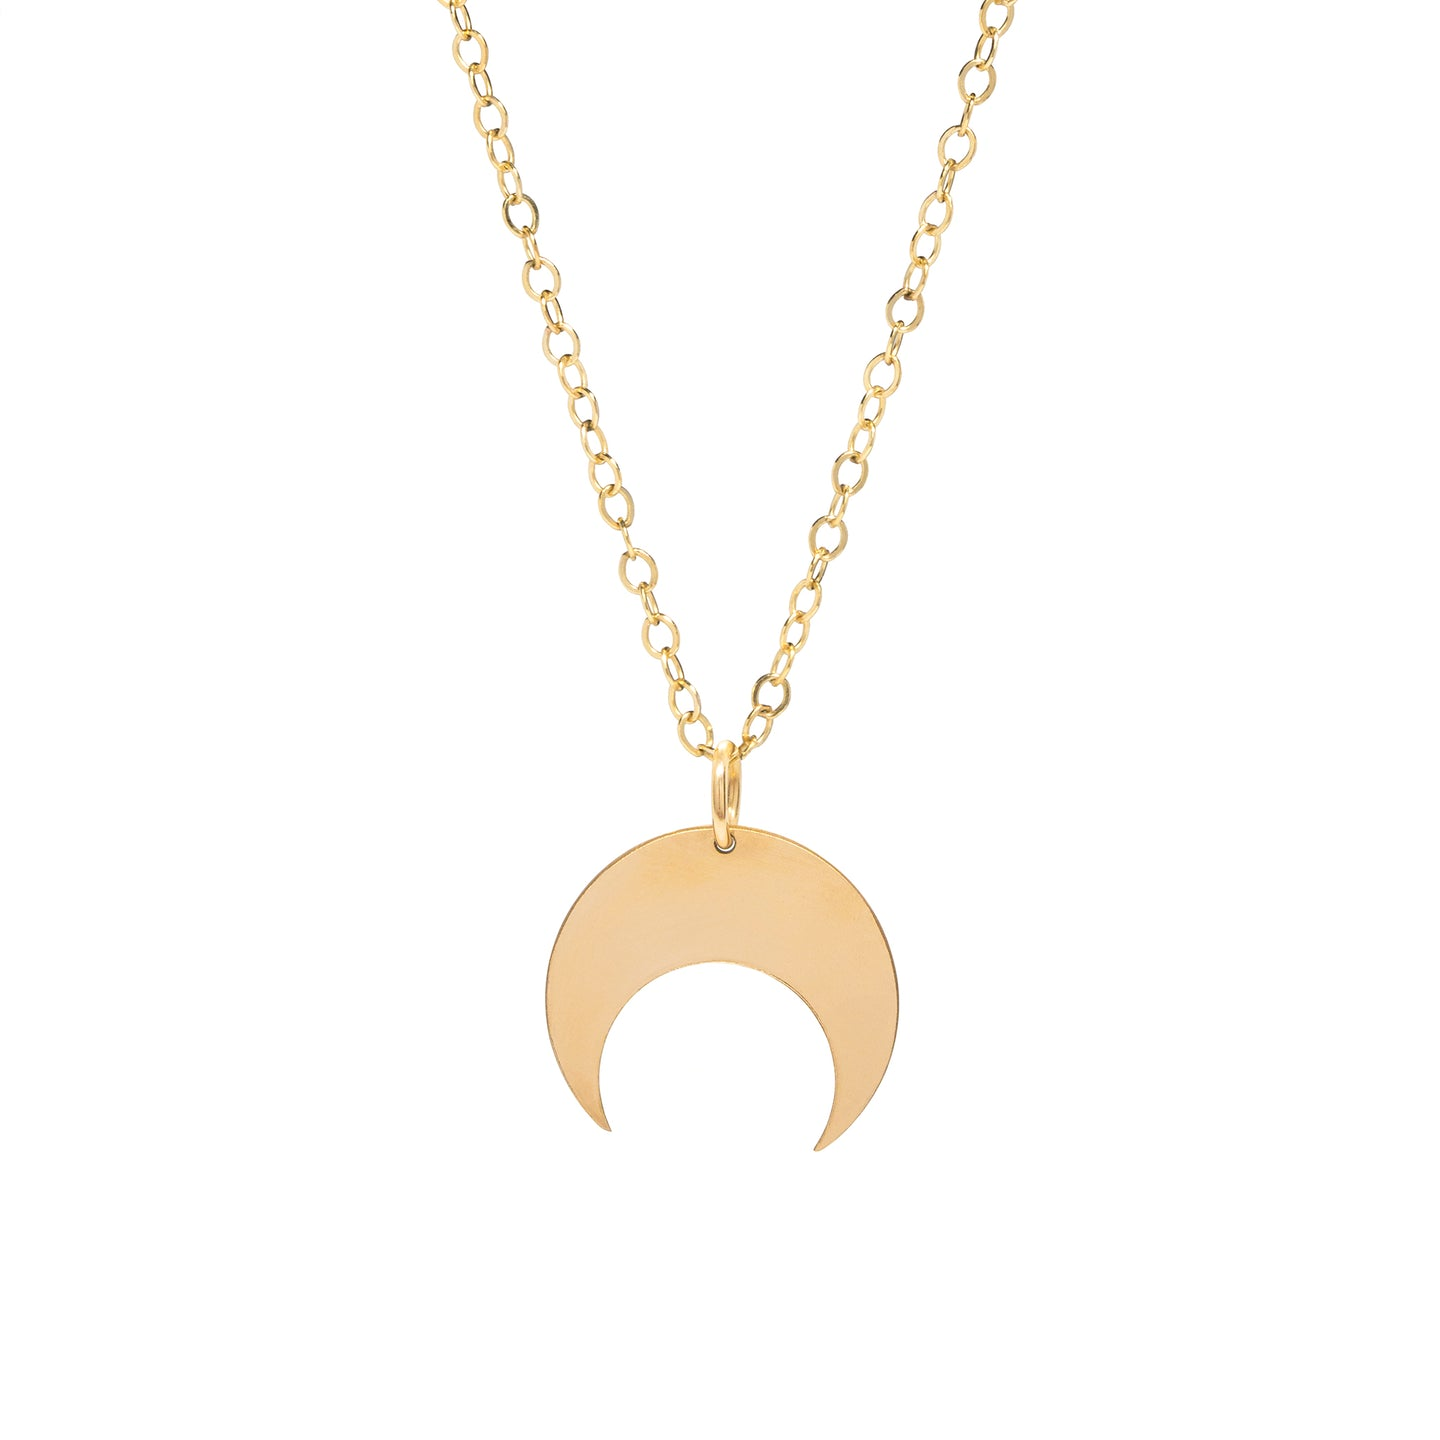 14k gold-filled Crescent Necklace